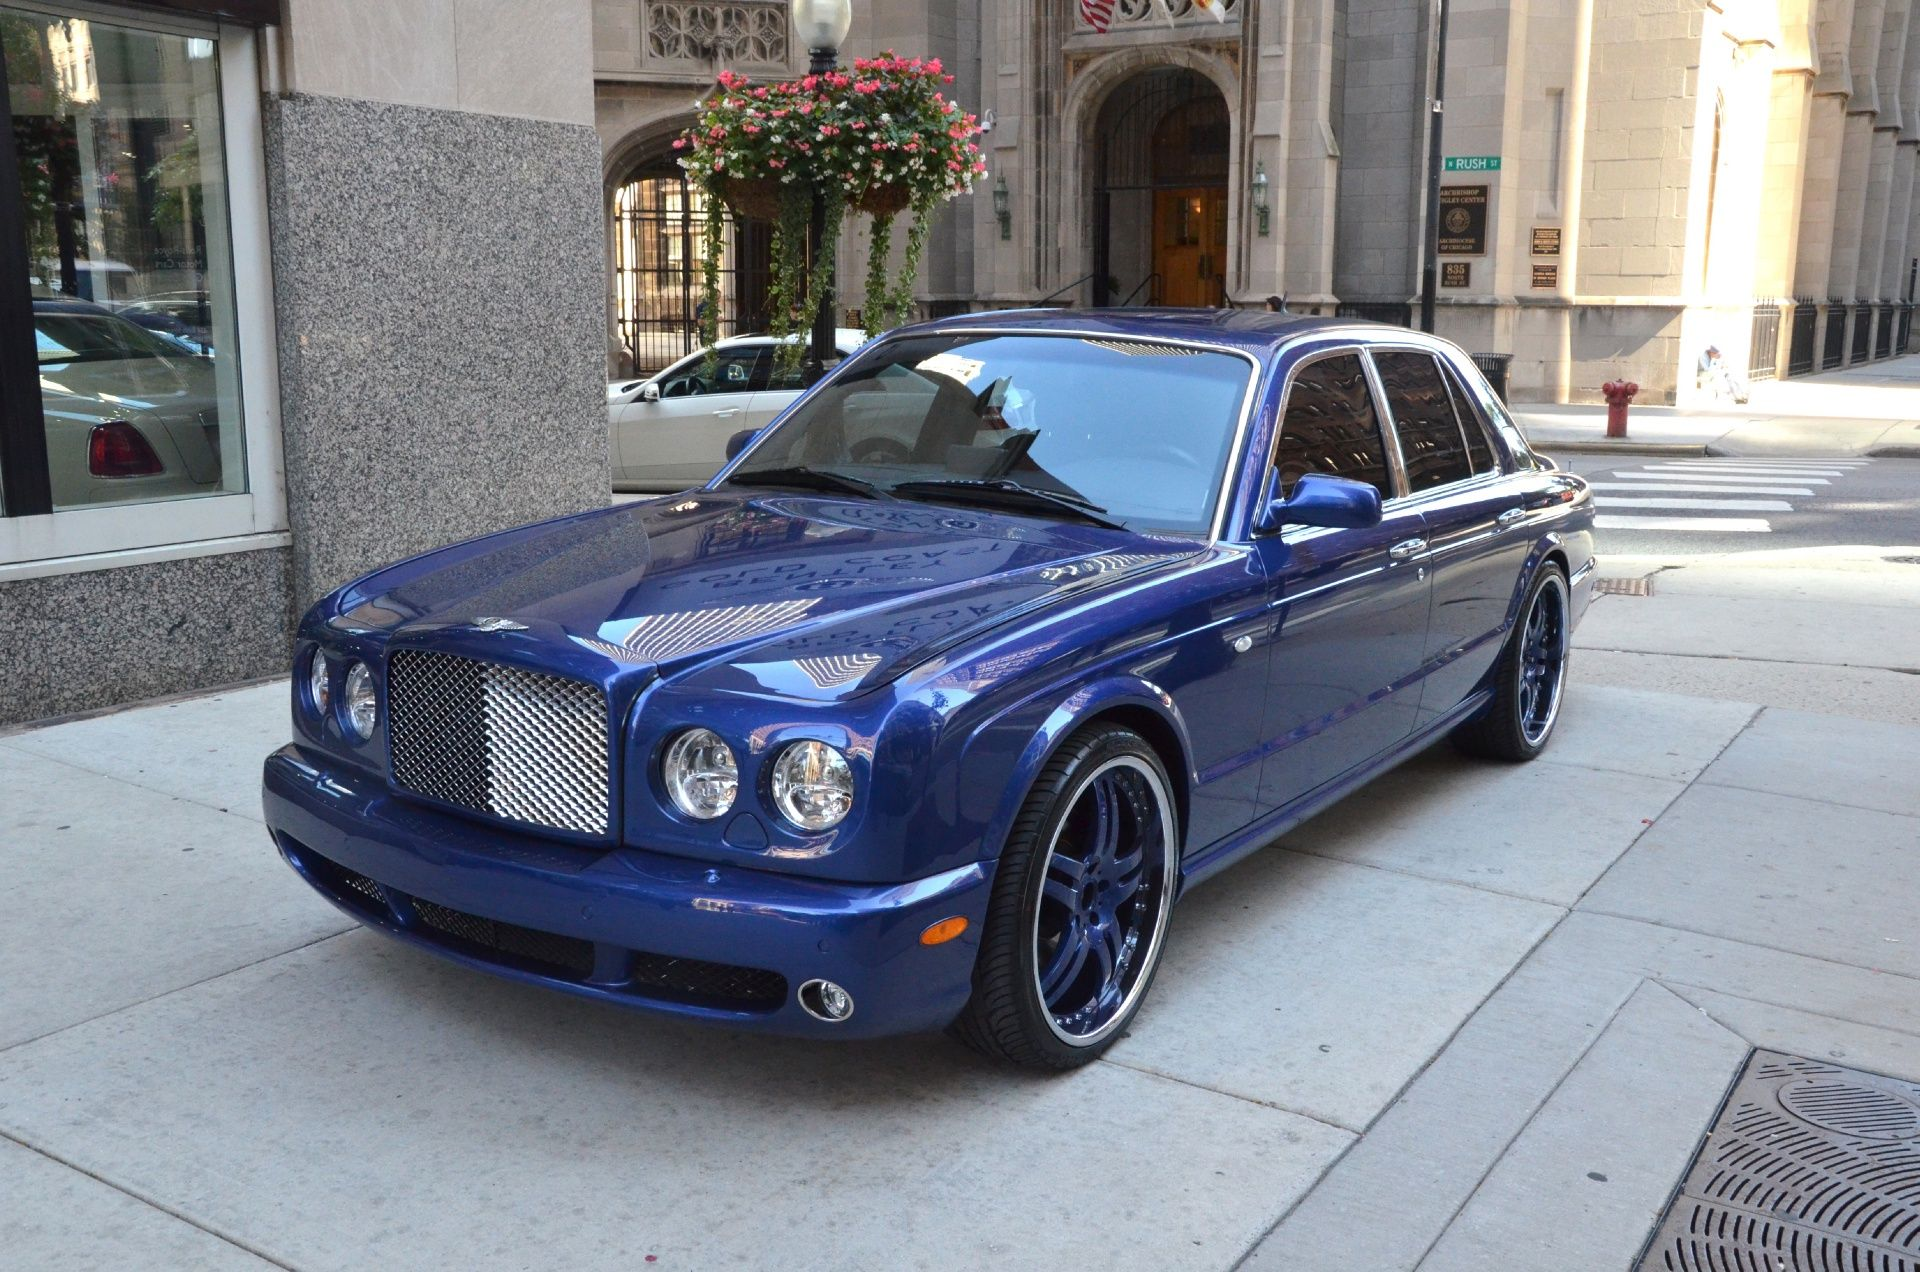 Bentley Gold Coast Is A Luxury Motor Car Dealer Located In Downtown Chicago Illinois Description From Bentleygoldcoast Co Bentley Arnage Bentley Luxury Motor